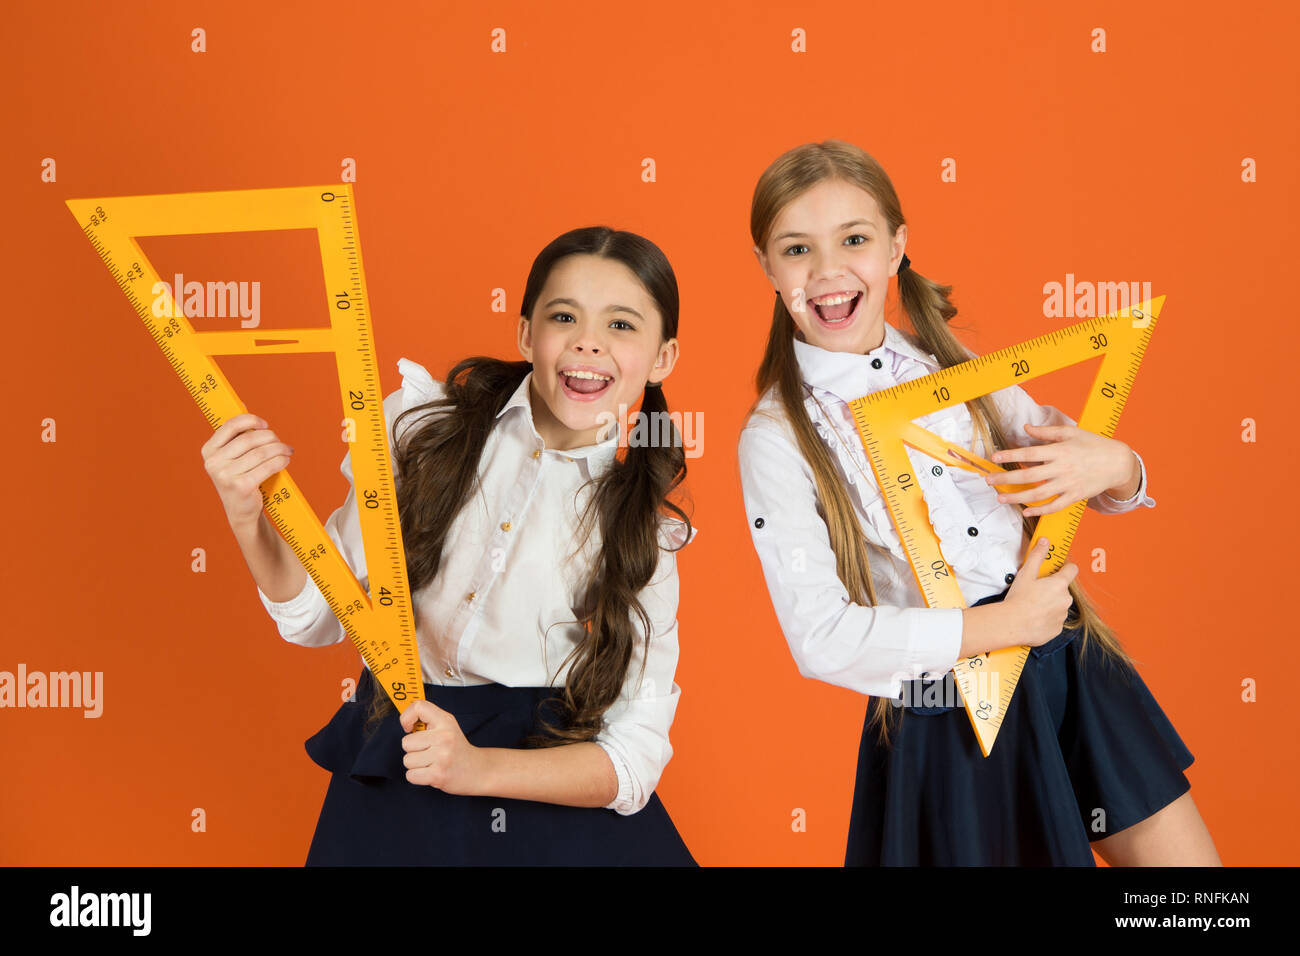 School students learning geometry. Kids school uniform on orange background. Pupil cute girls with big rulers. Geometry school subject. Drawing with ruler chalkboard. Education and school concept. - Stock Image